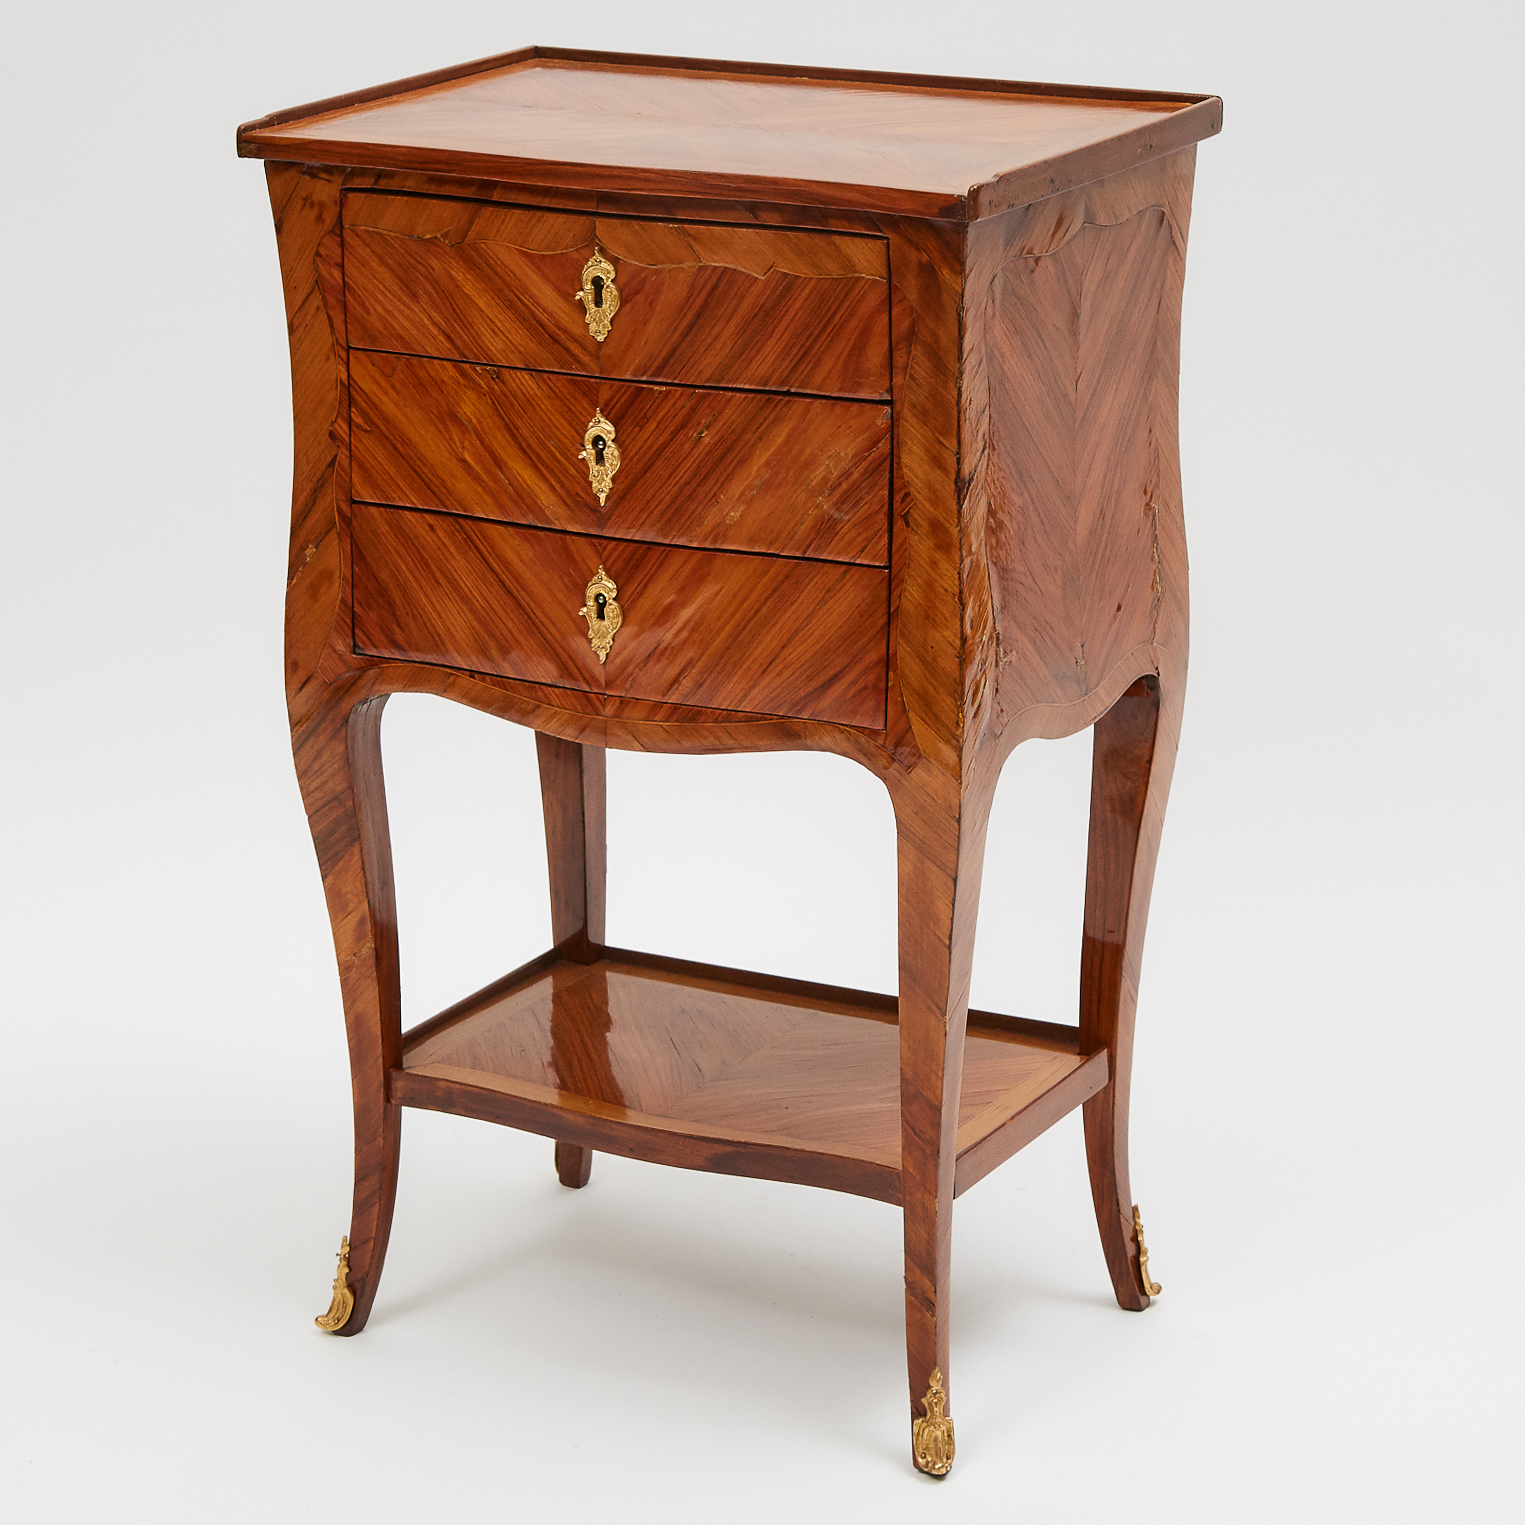 French Kingwood Table en Chiffonier, late 18th century